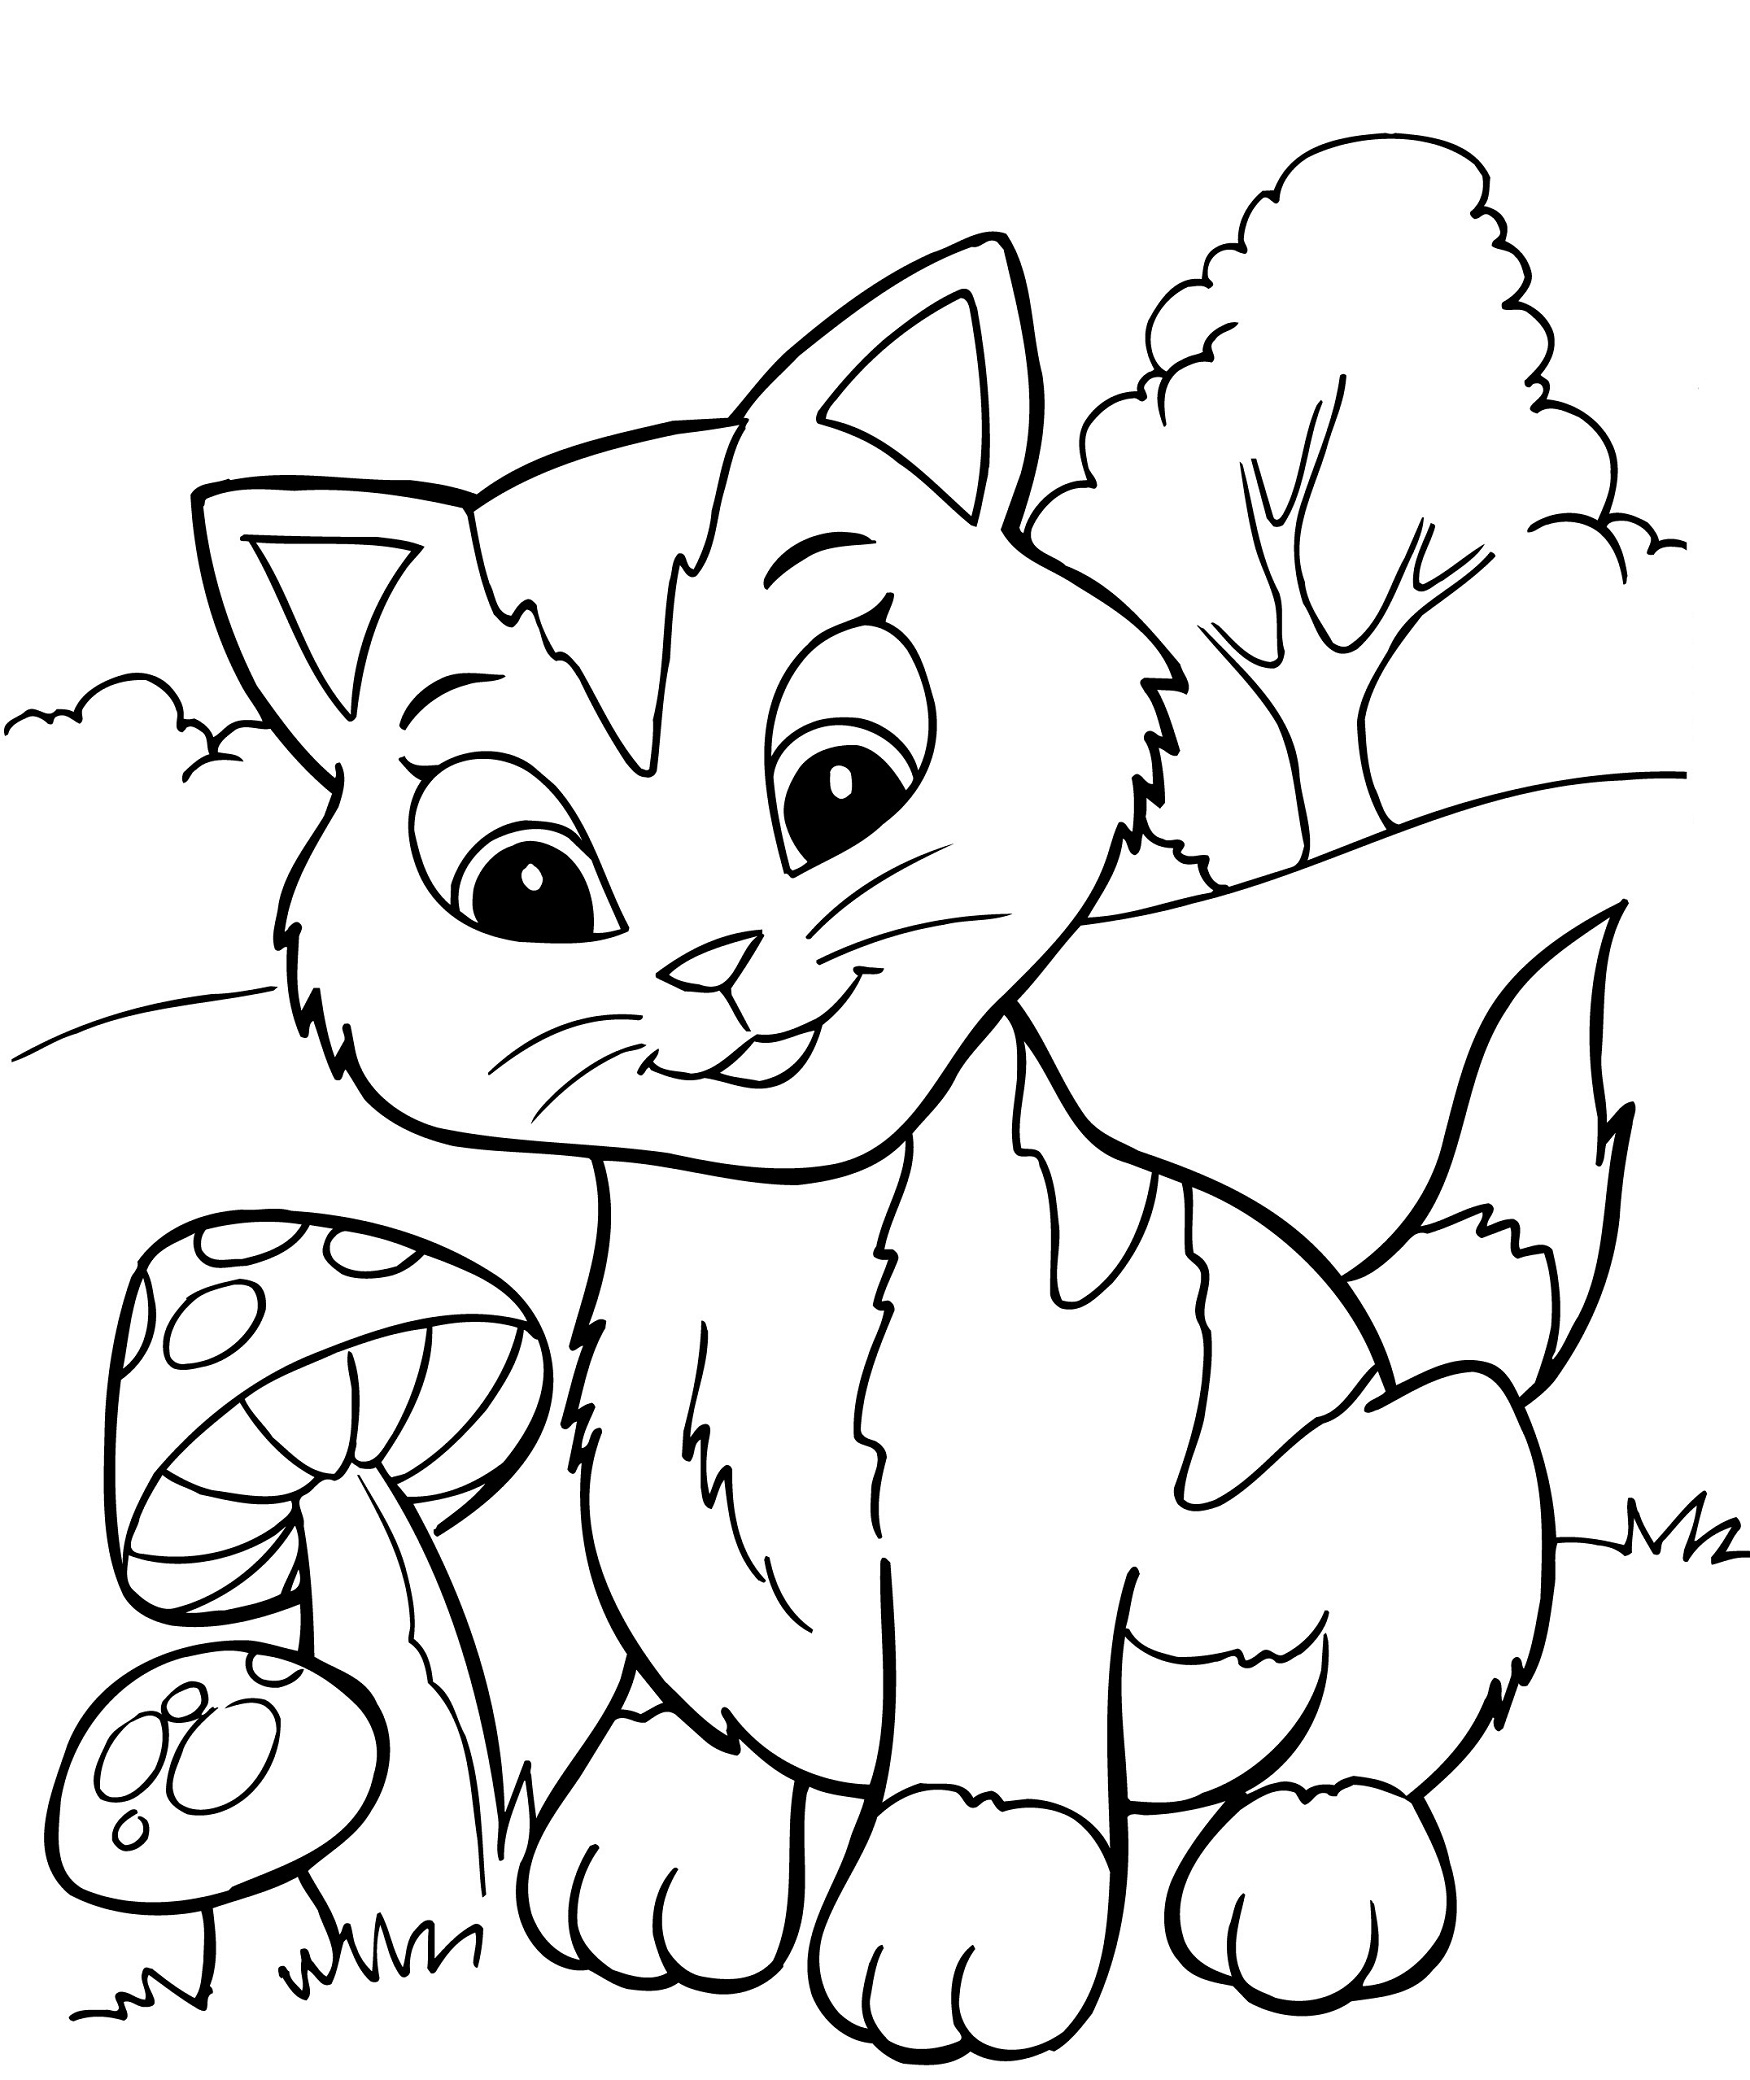 cat pictures to colour in free printable cat coloring pages for kids in to colour cat pictures